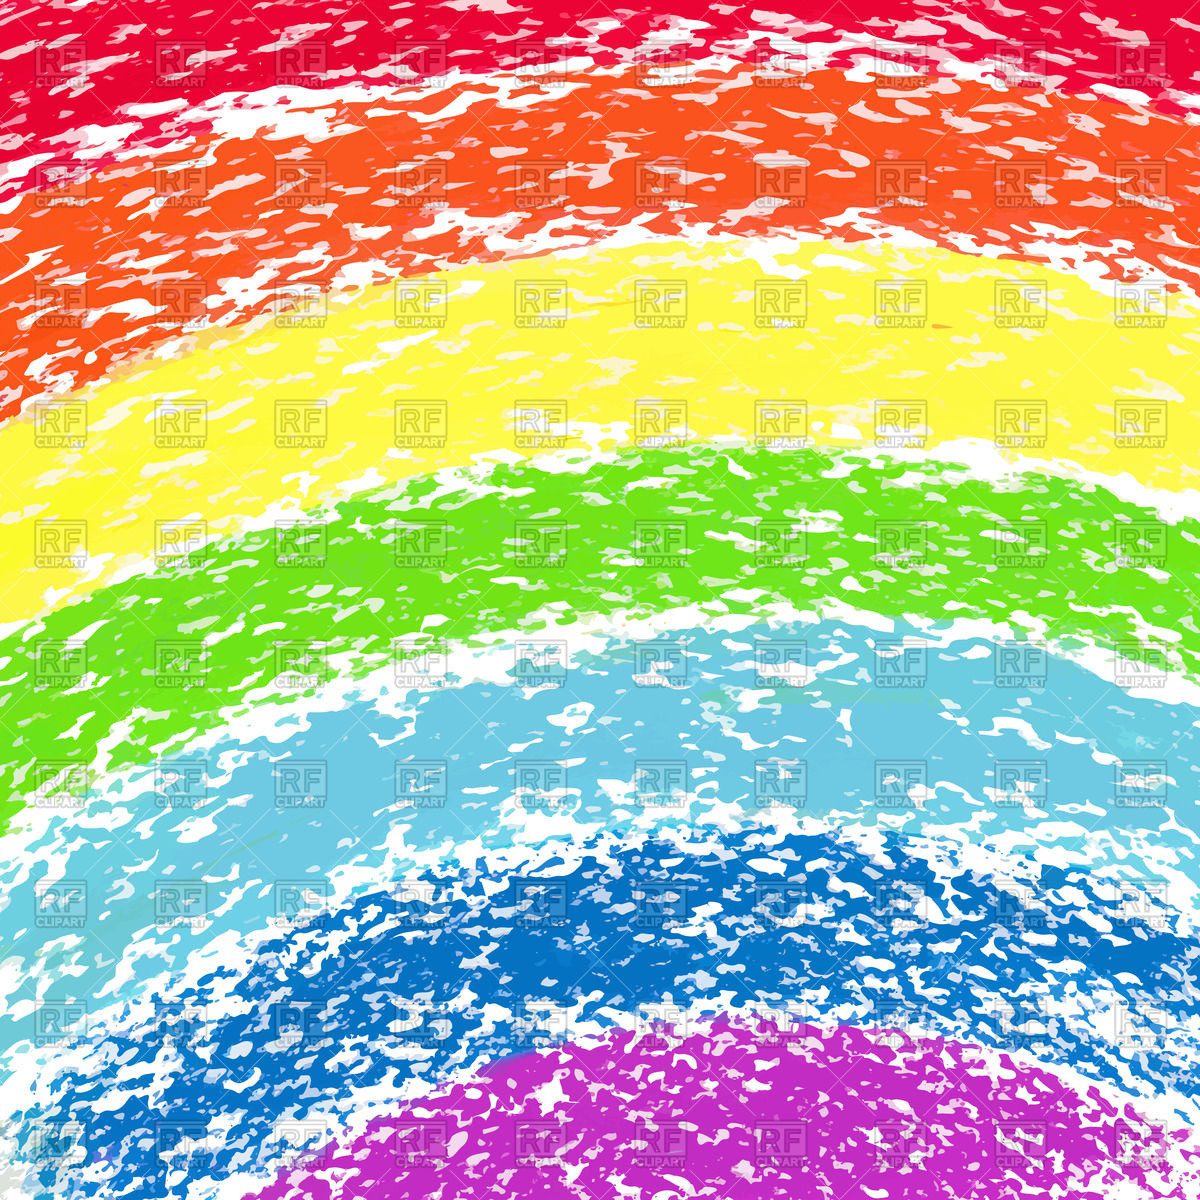 Rainbow painted by pastel crayons Vector Image #44513.